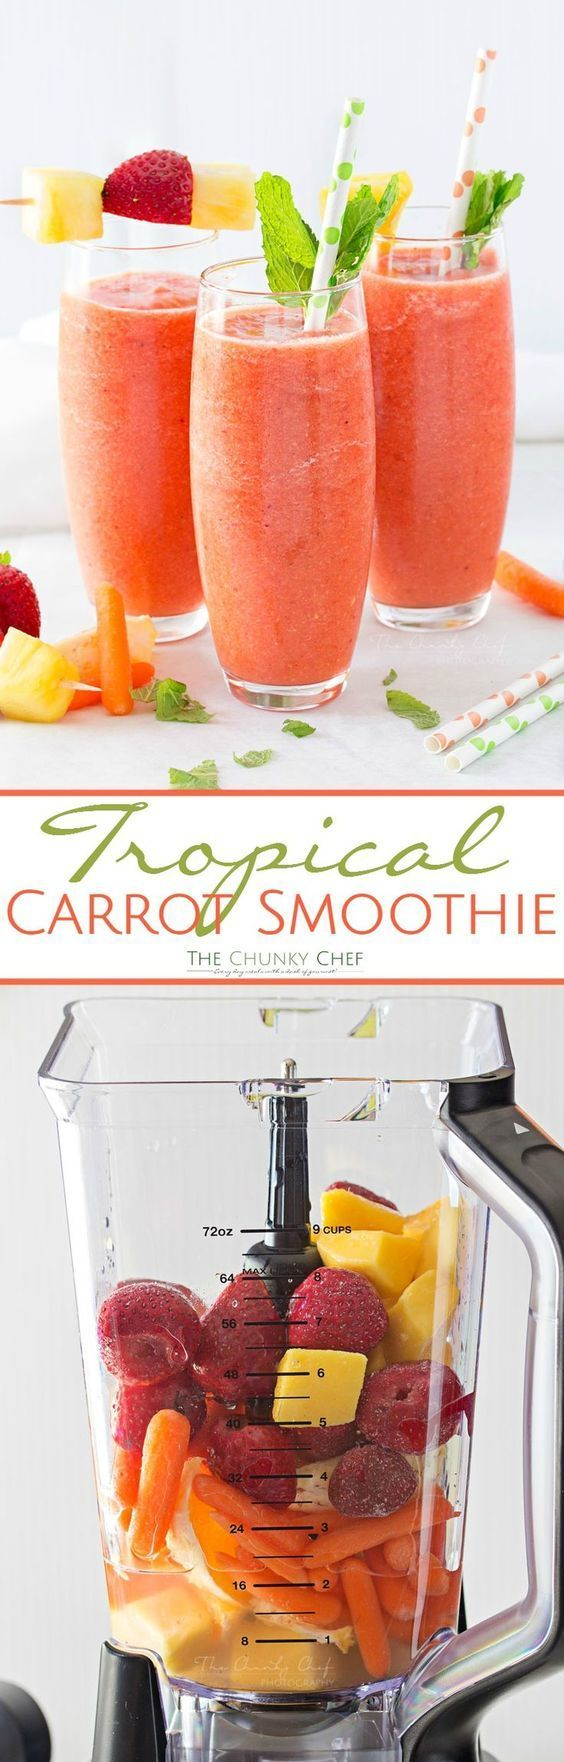 Tropical Carrot Smoothie ~ This simple-to-make carrot smoothie is bursting with tropical flavors and is so full of nutrients... healthy never tasted so good! | thechunkychef.com